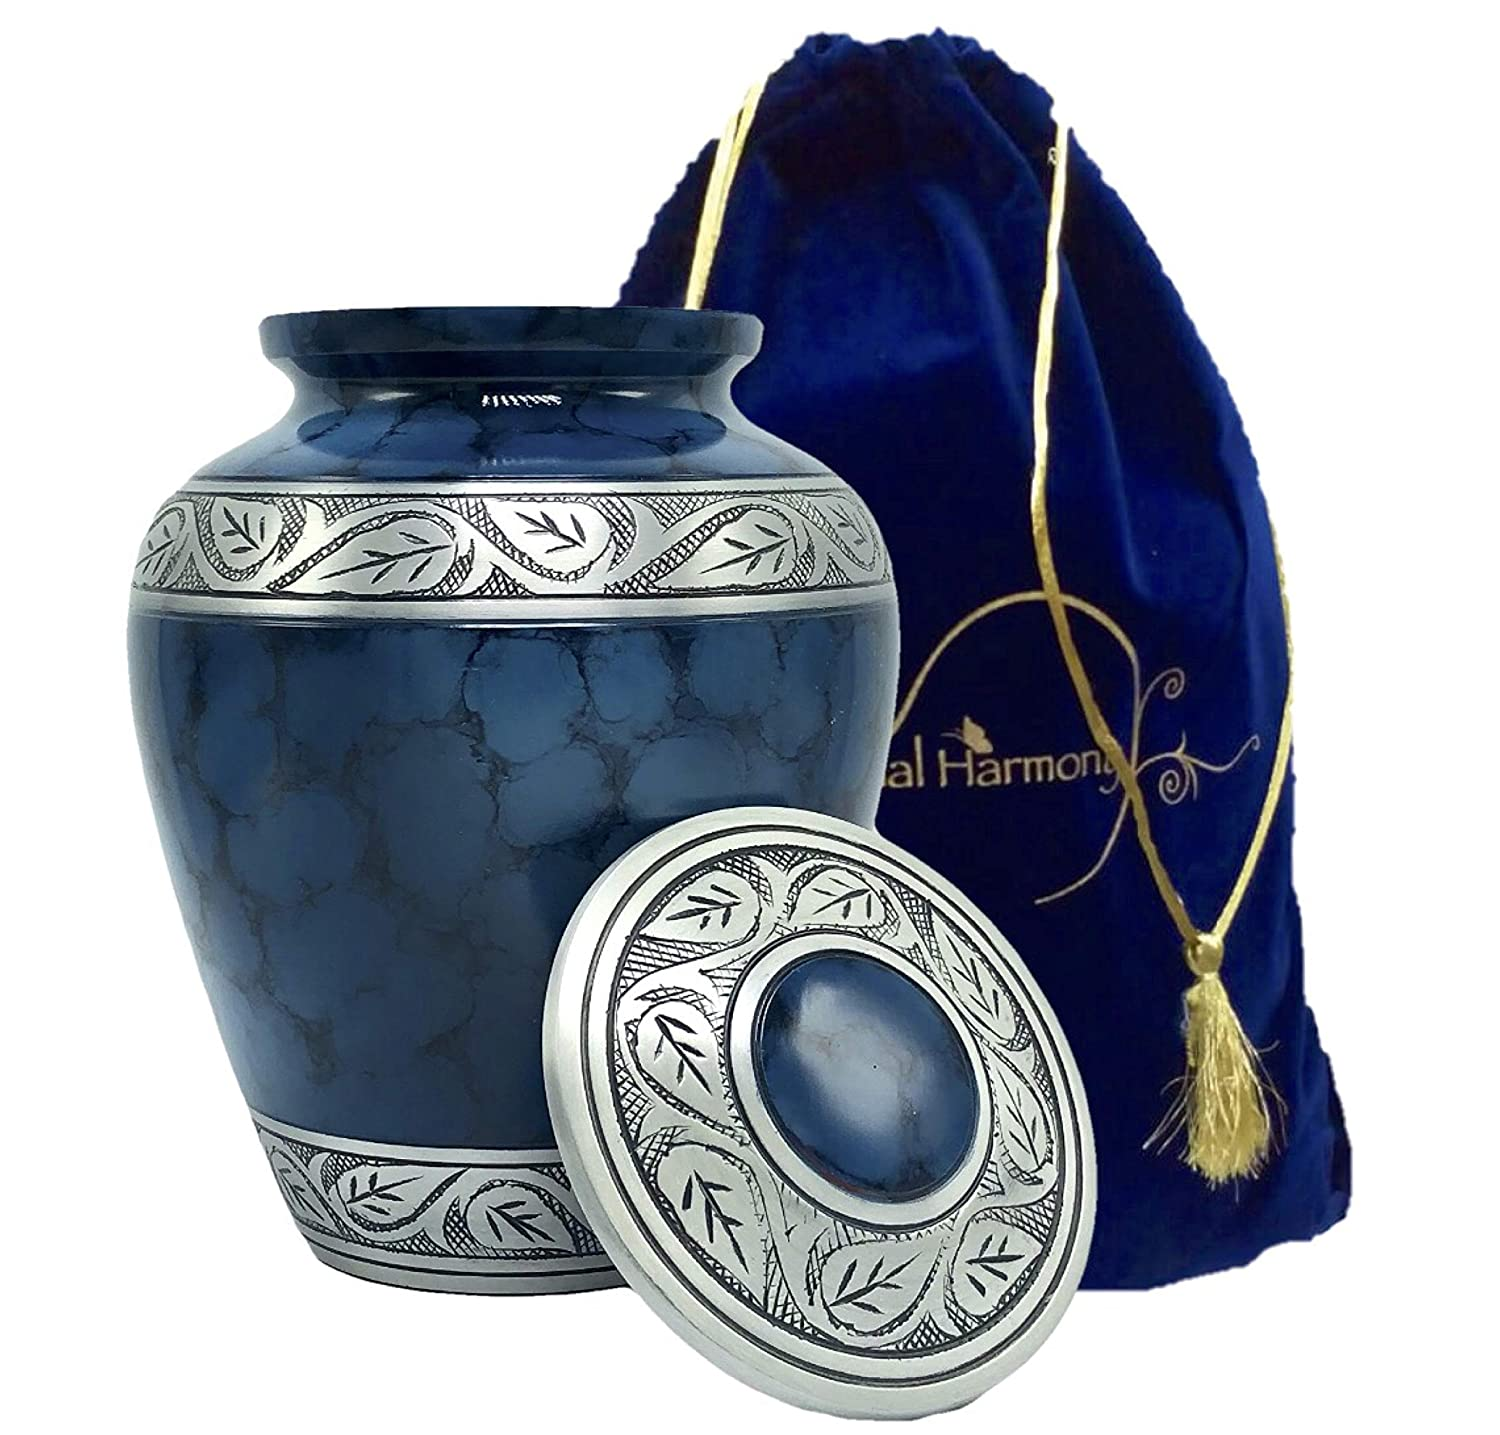 Eternal Harmony Memorial Cremation Urn for Human Ashes | Carefully Handcrafted with Elegant Finishes to Honor and Remember Your Loved One | Adult Large Size with Beautiful Velvet Bag (Blue Peace)